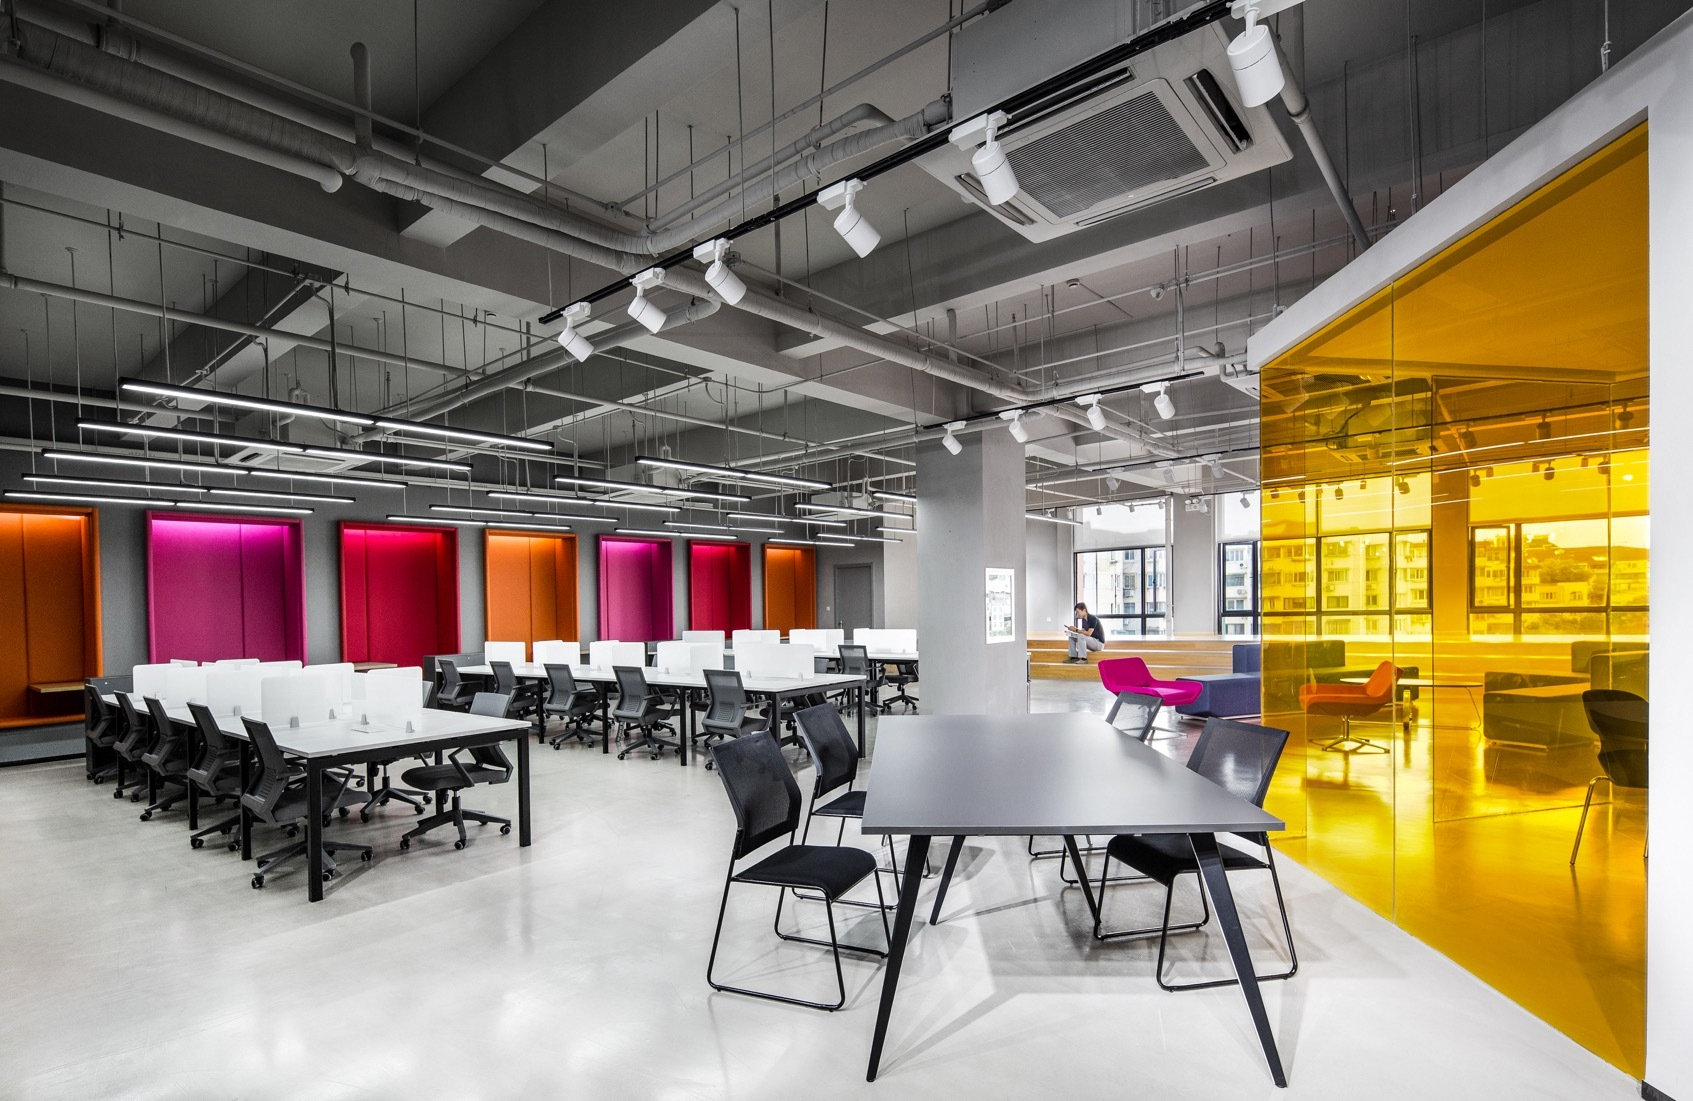 Shanghai sunrise polymer material office ccdi gw design for Office design archdaily